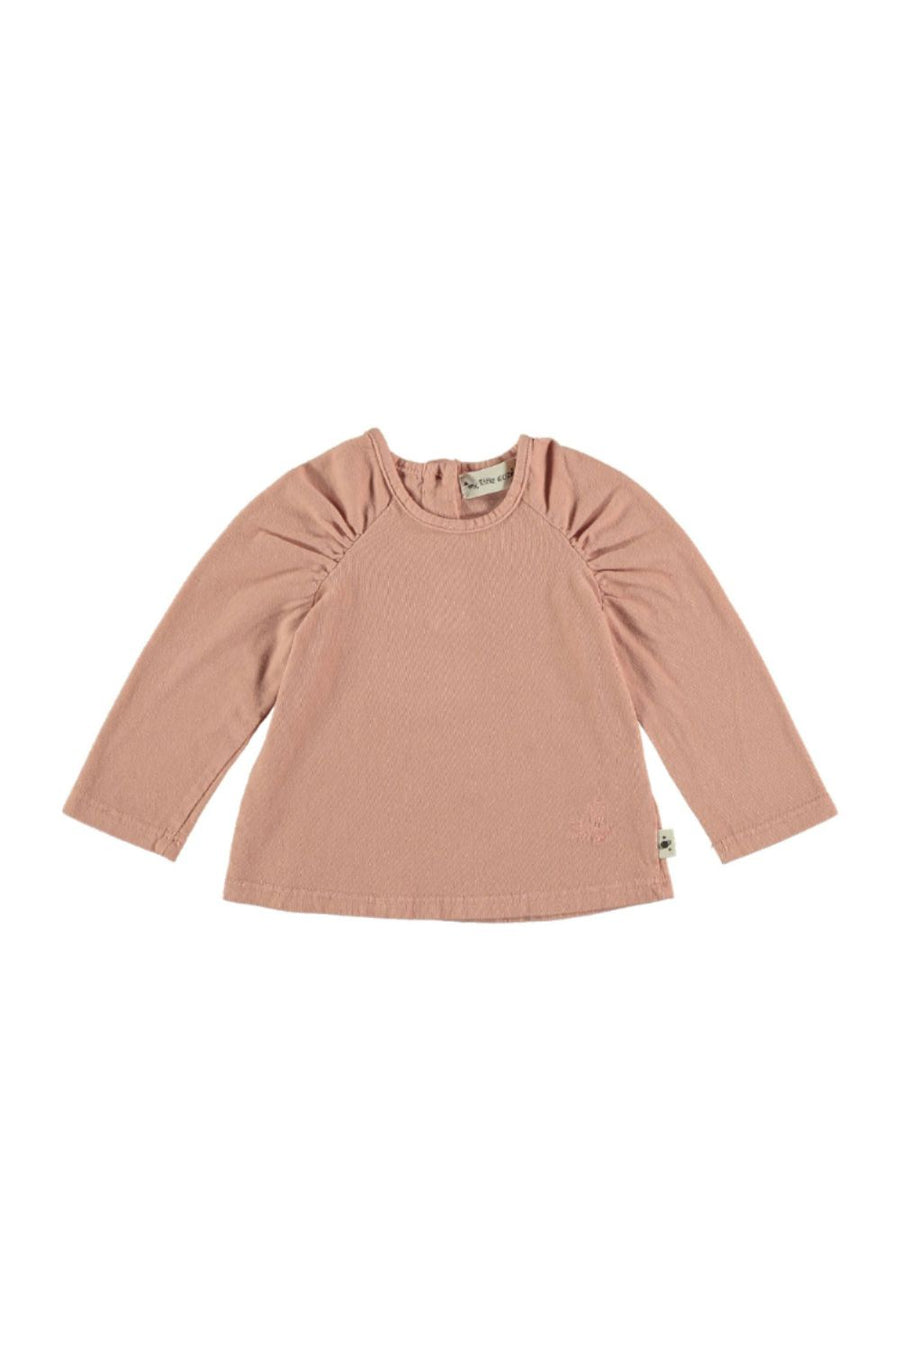 organic cotton clothes for babies